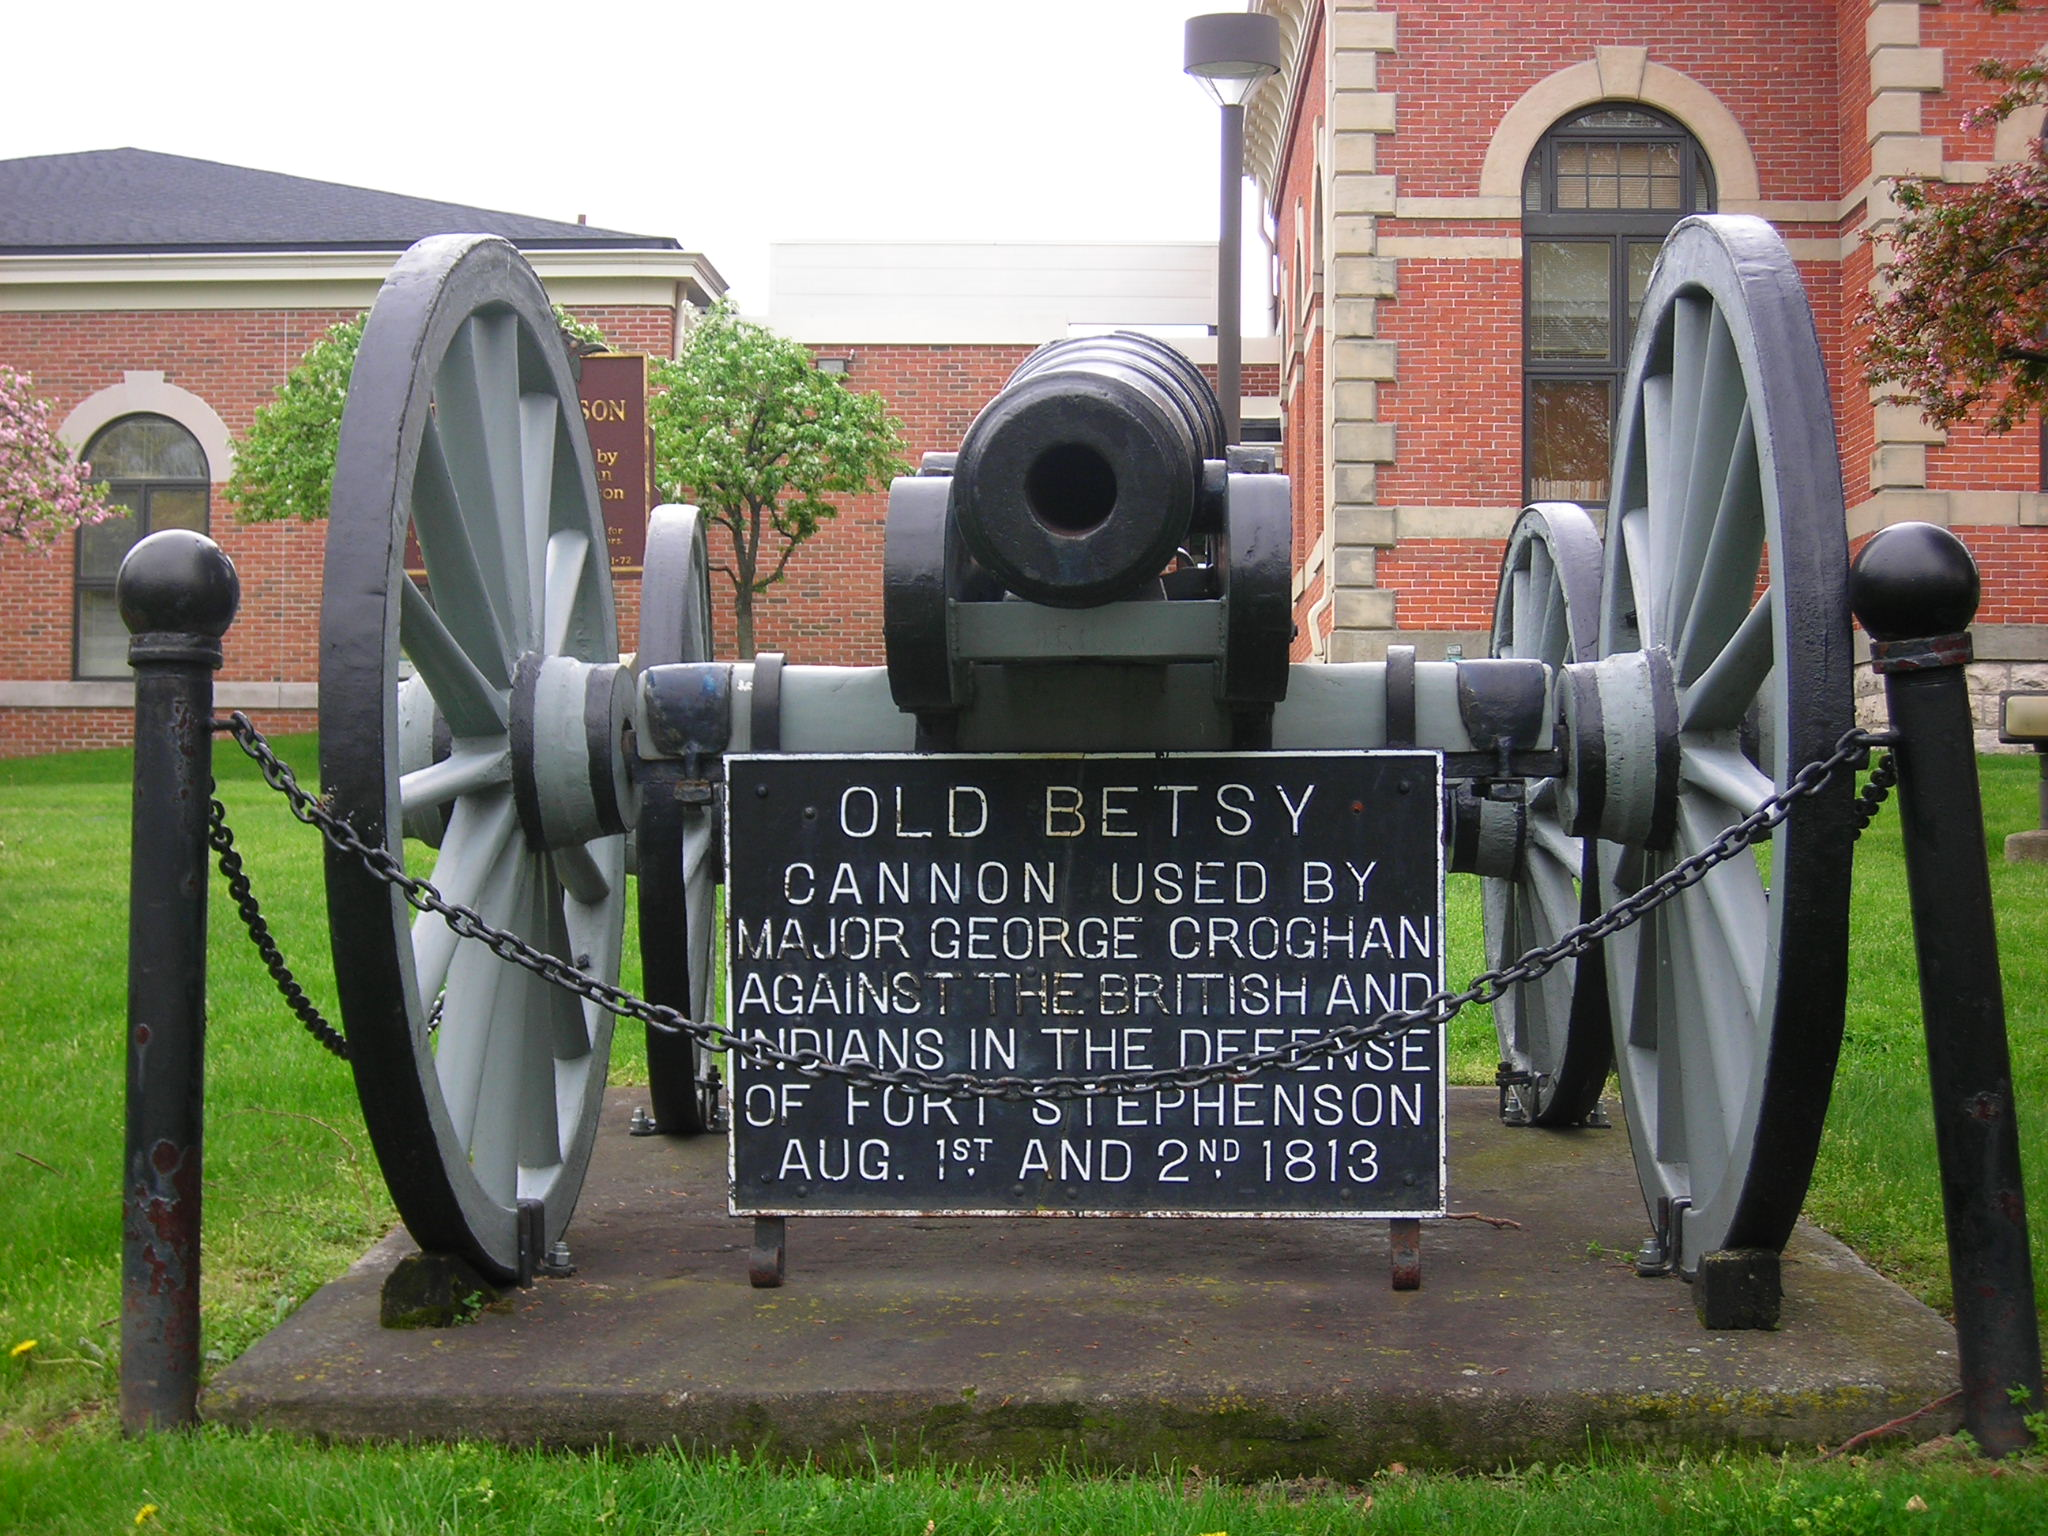 Picture of Cannon used at Fort Stephenson - Old Betsy